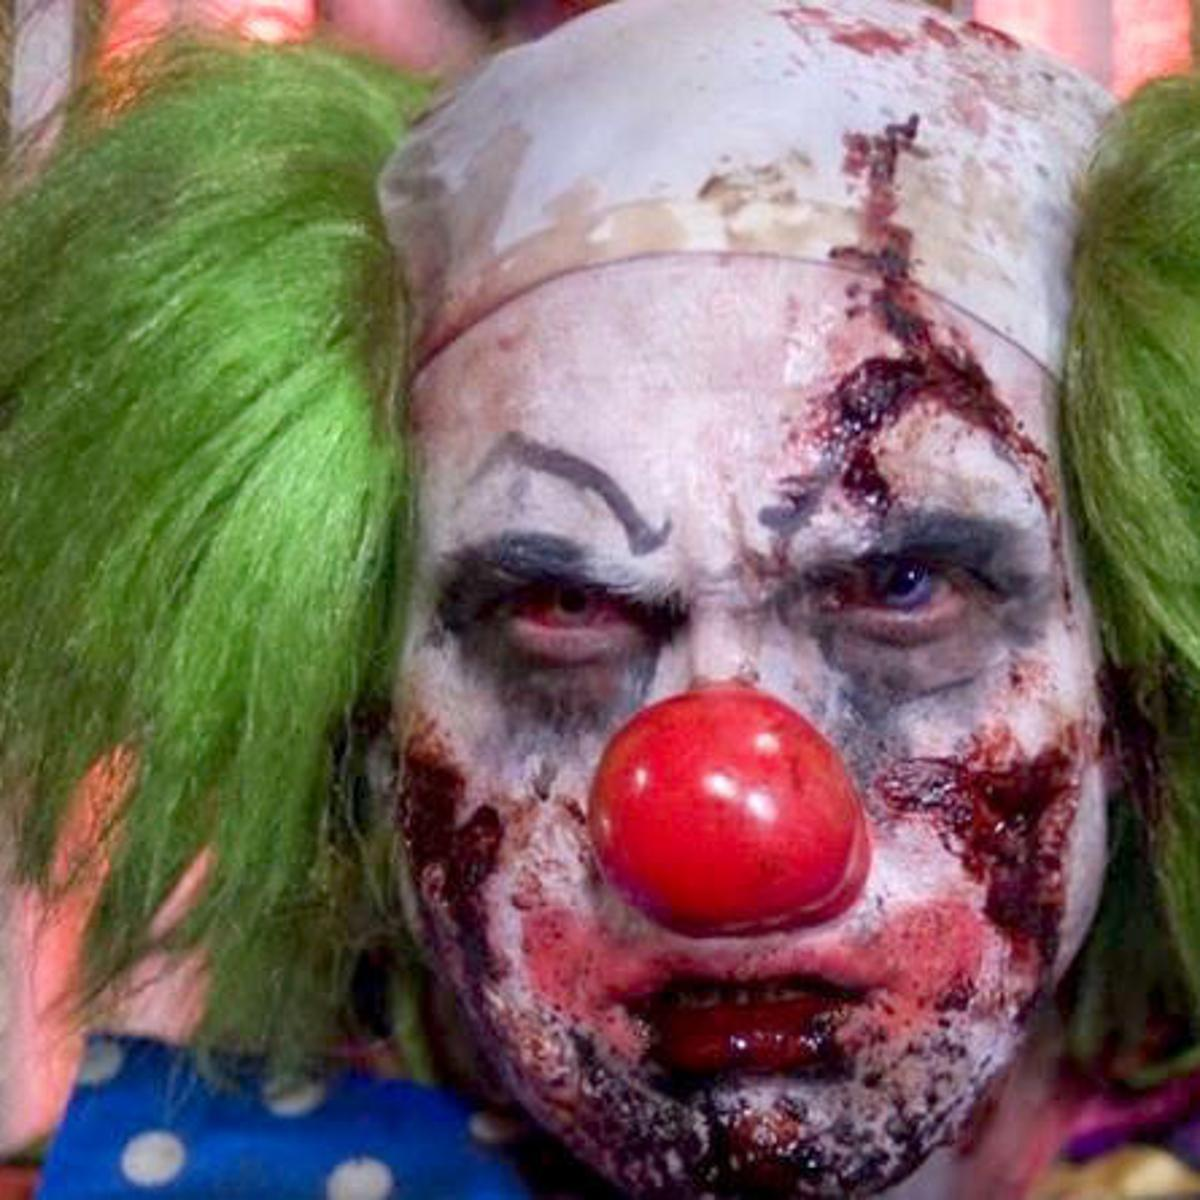 13-year-old arrested as 'creepy clown' craze hits South